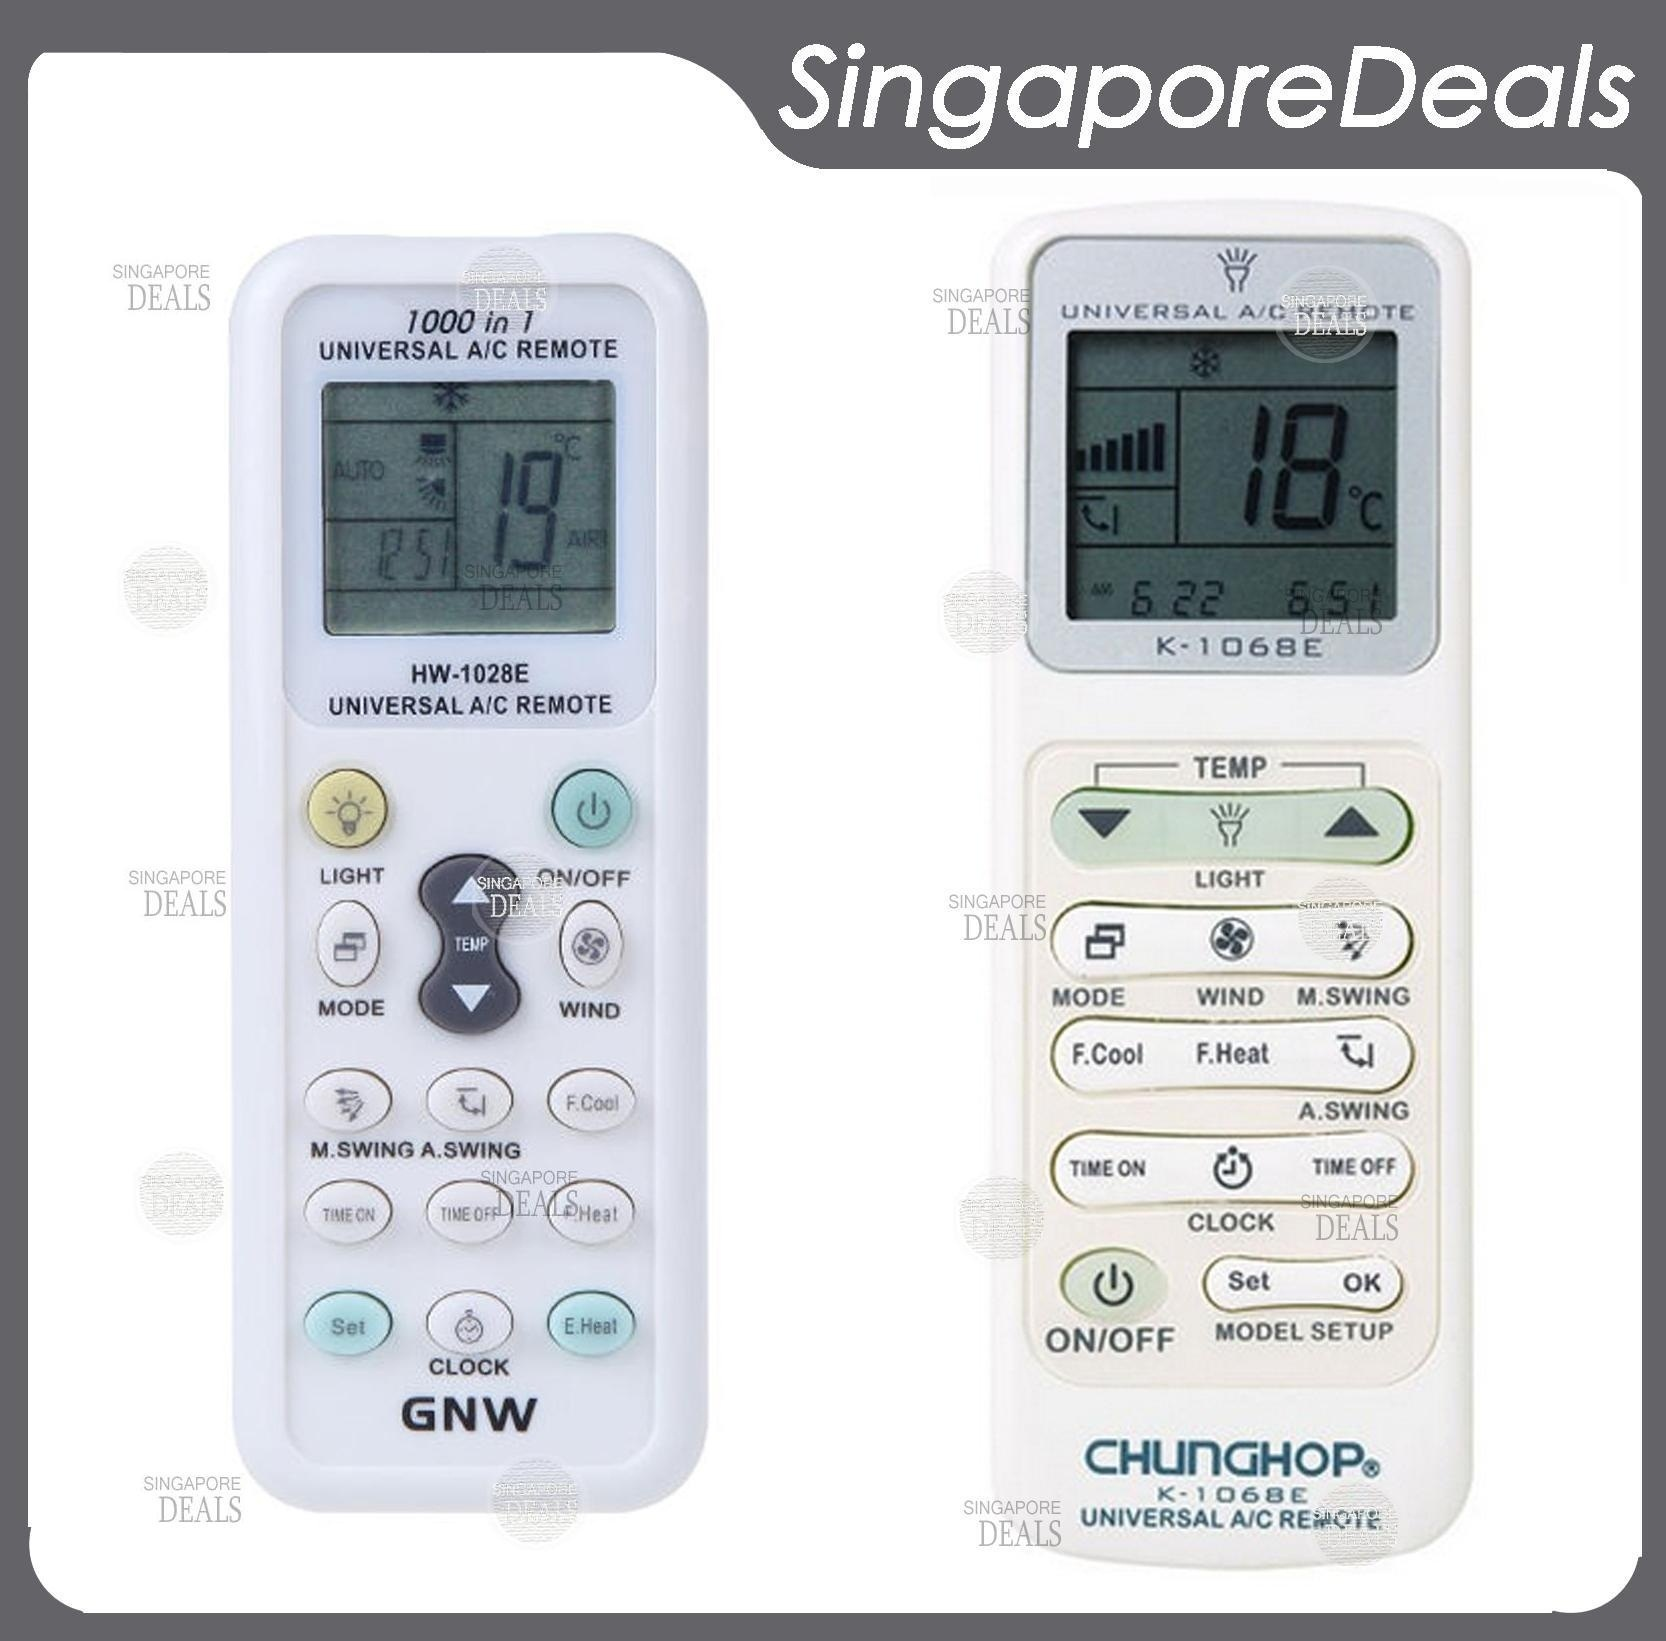 Qoo10 clearance sale universal aircon remote air con remote show all item images biocorpaavc Choice Image